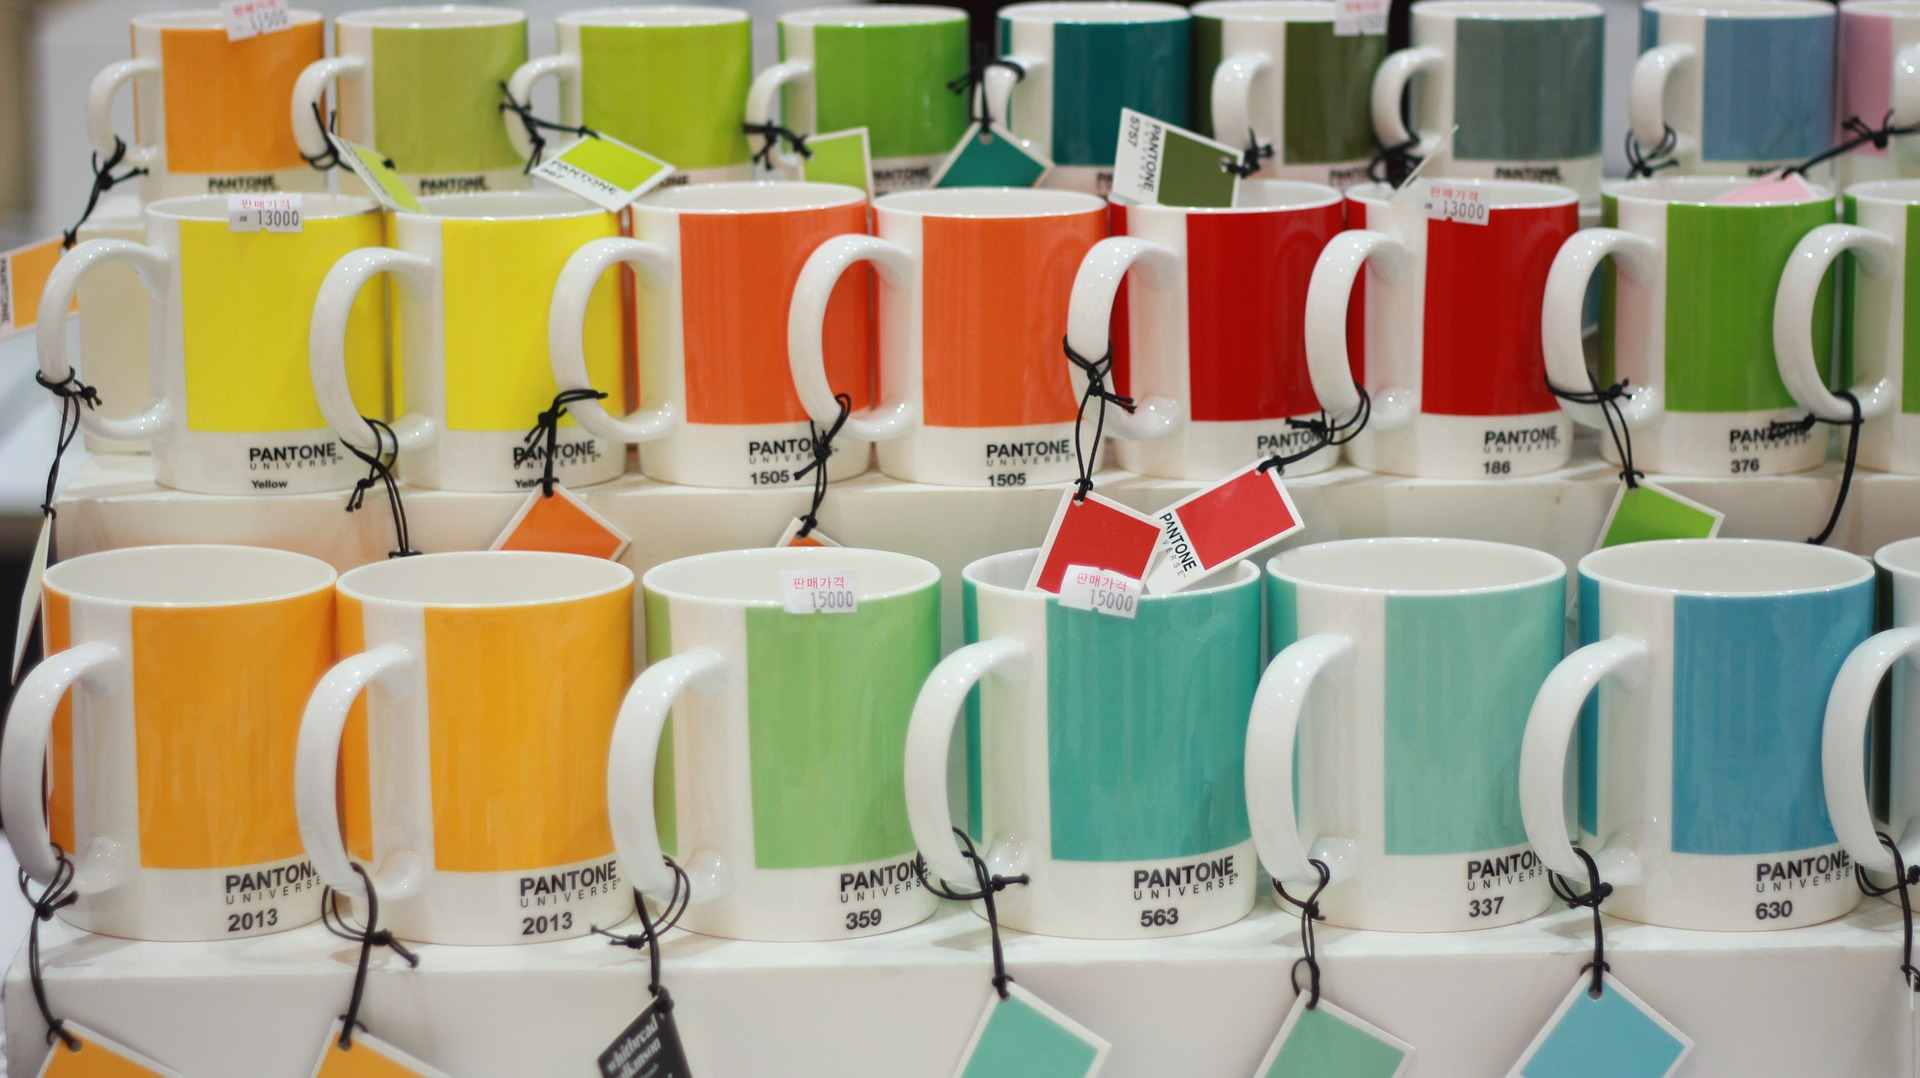 Other color systems exist, but none are as widely-known as Pantone.